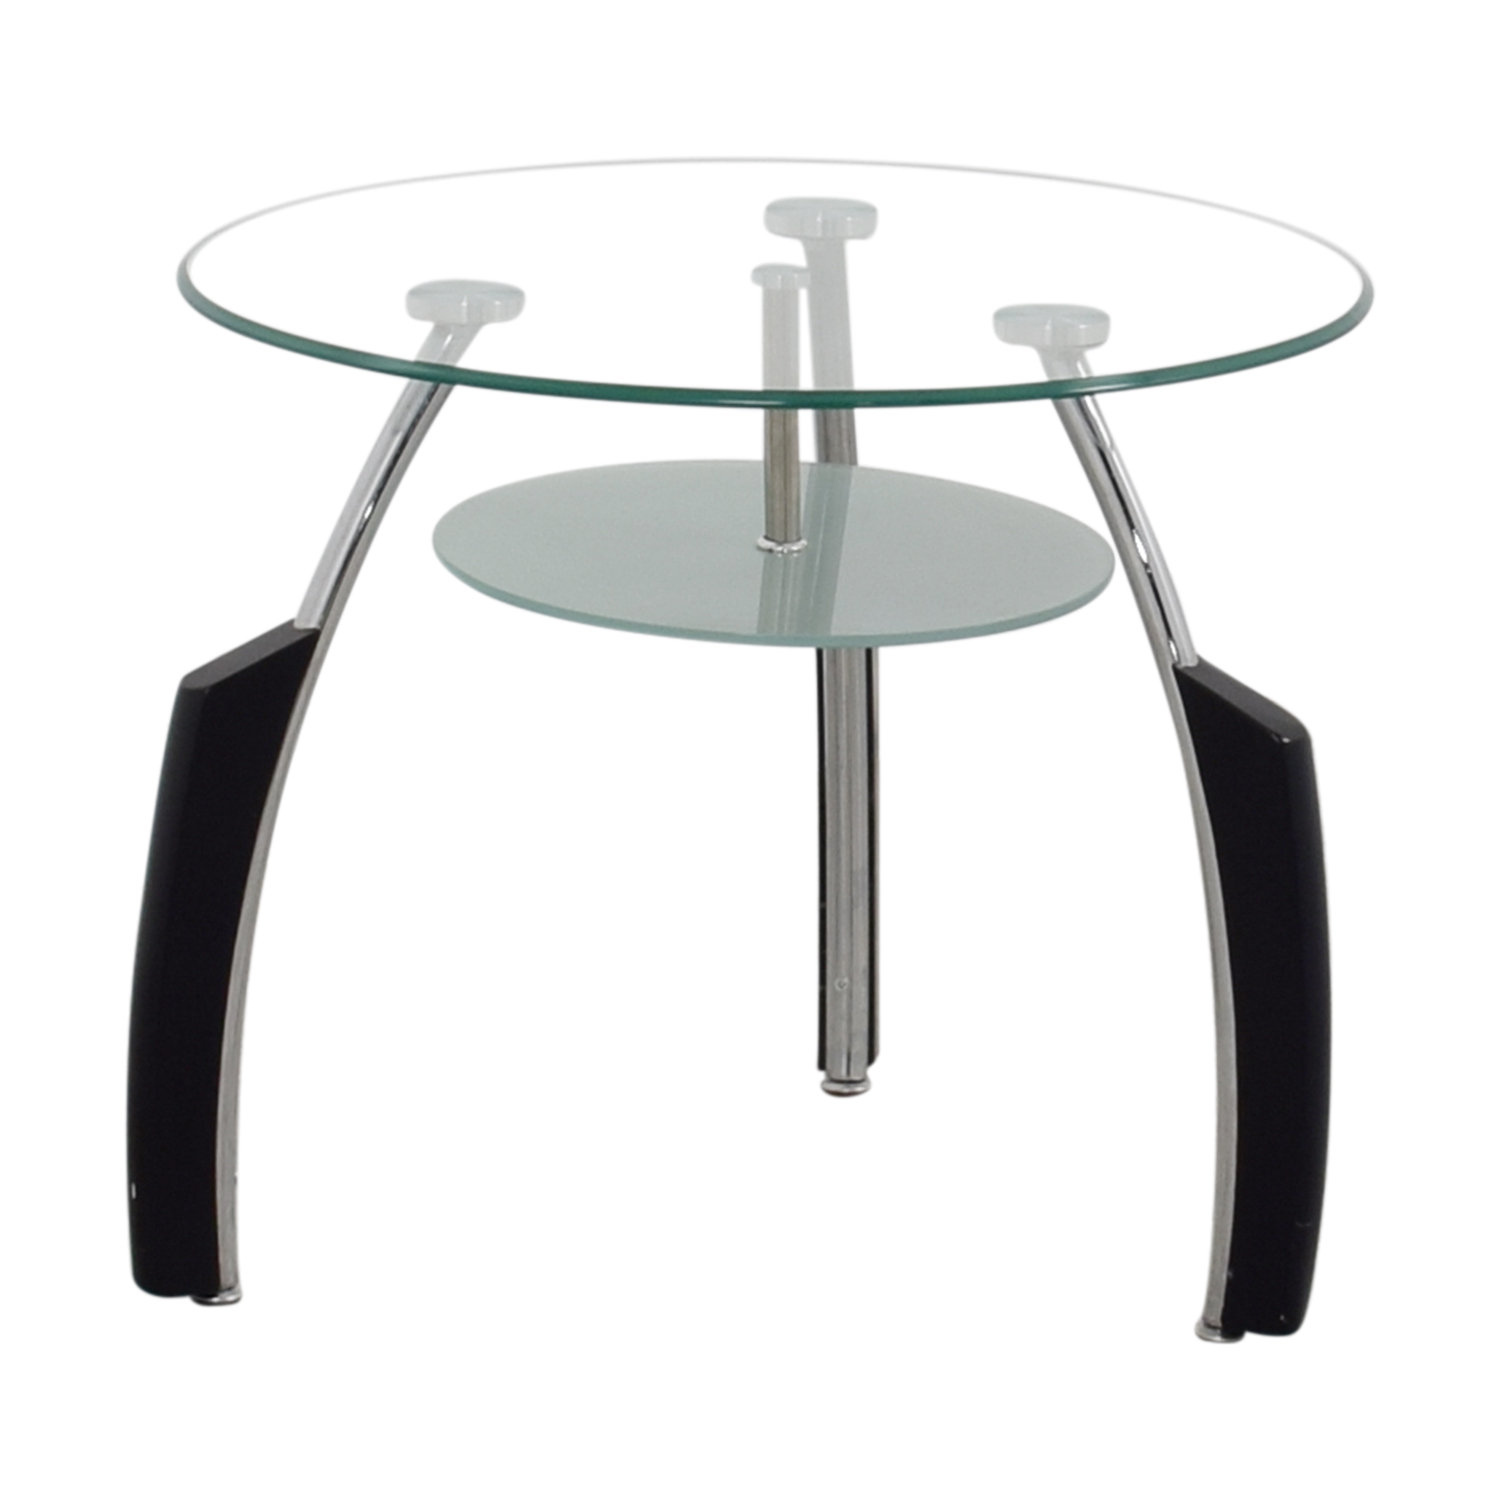 Round Glass Top End Tables 62 Off Round Glass End Table Tables